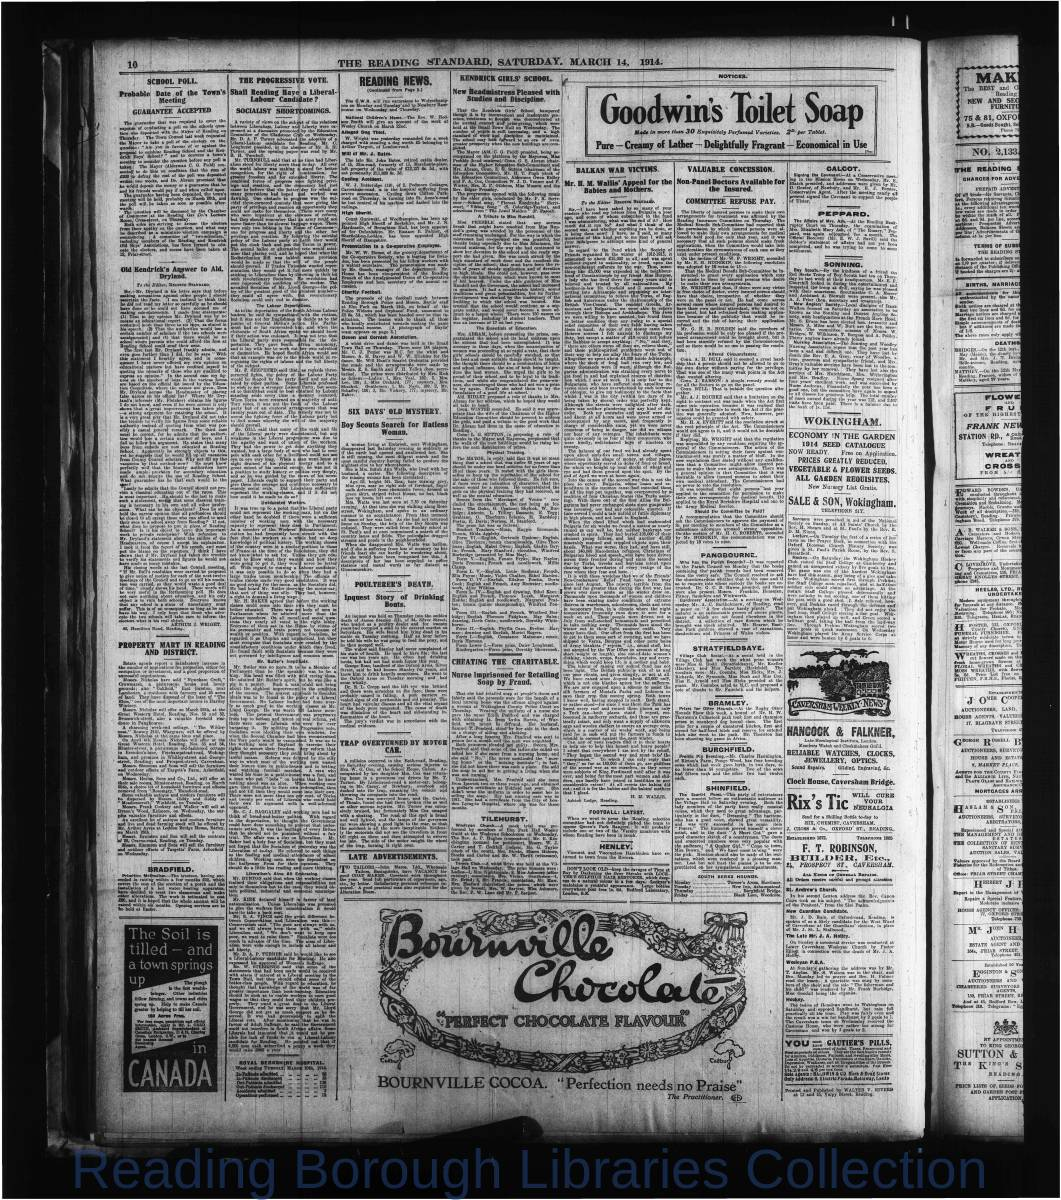 Reading Standard, Saturday, March 14, 1914. Pg 10